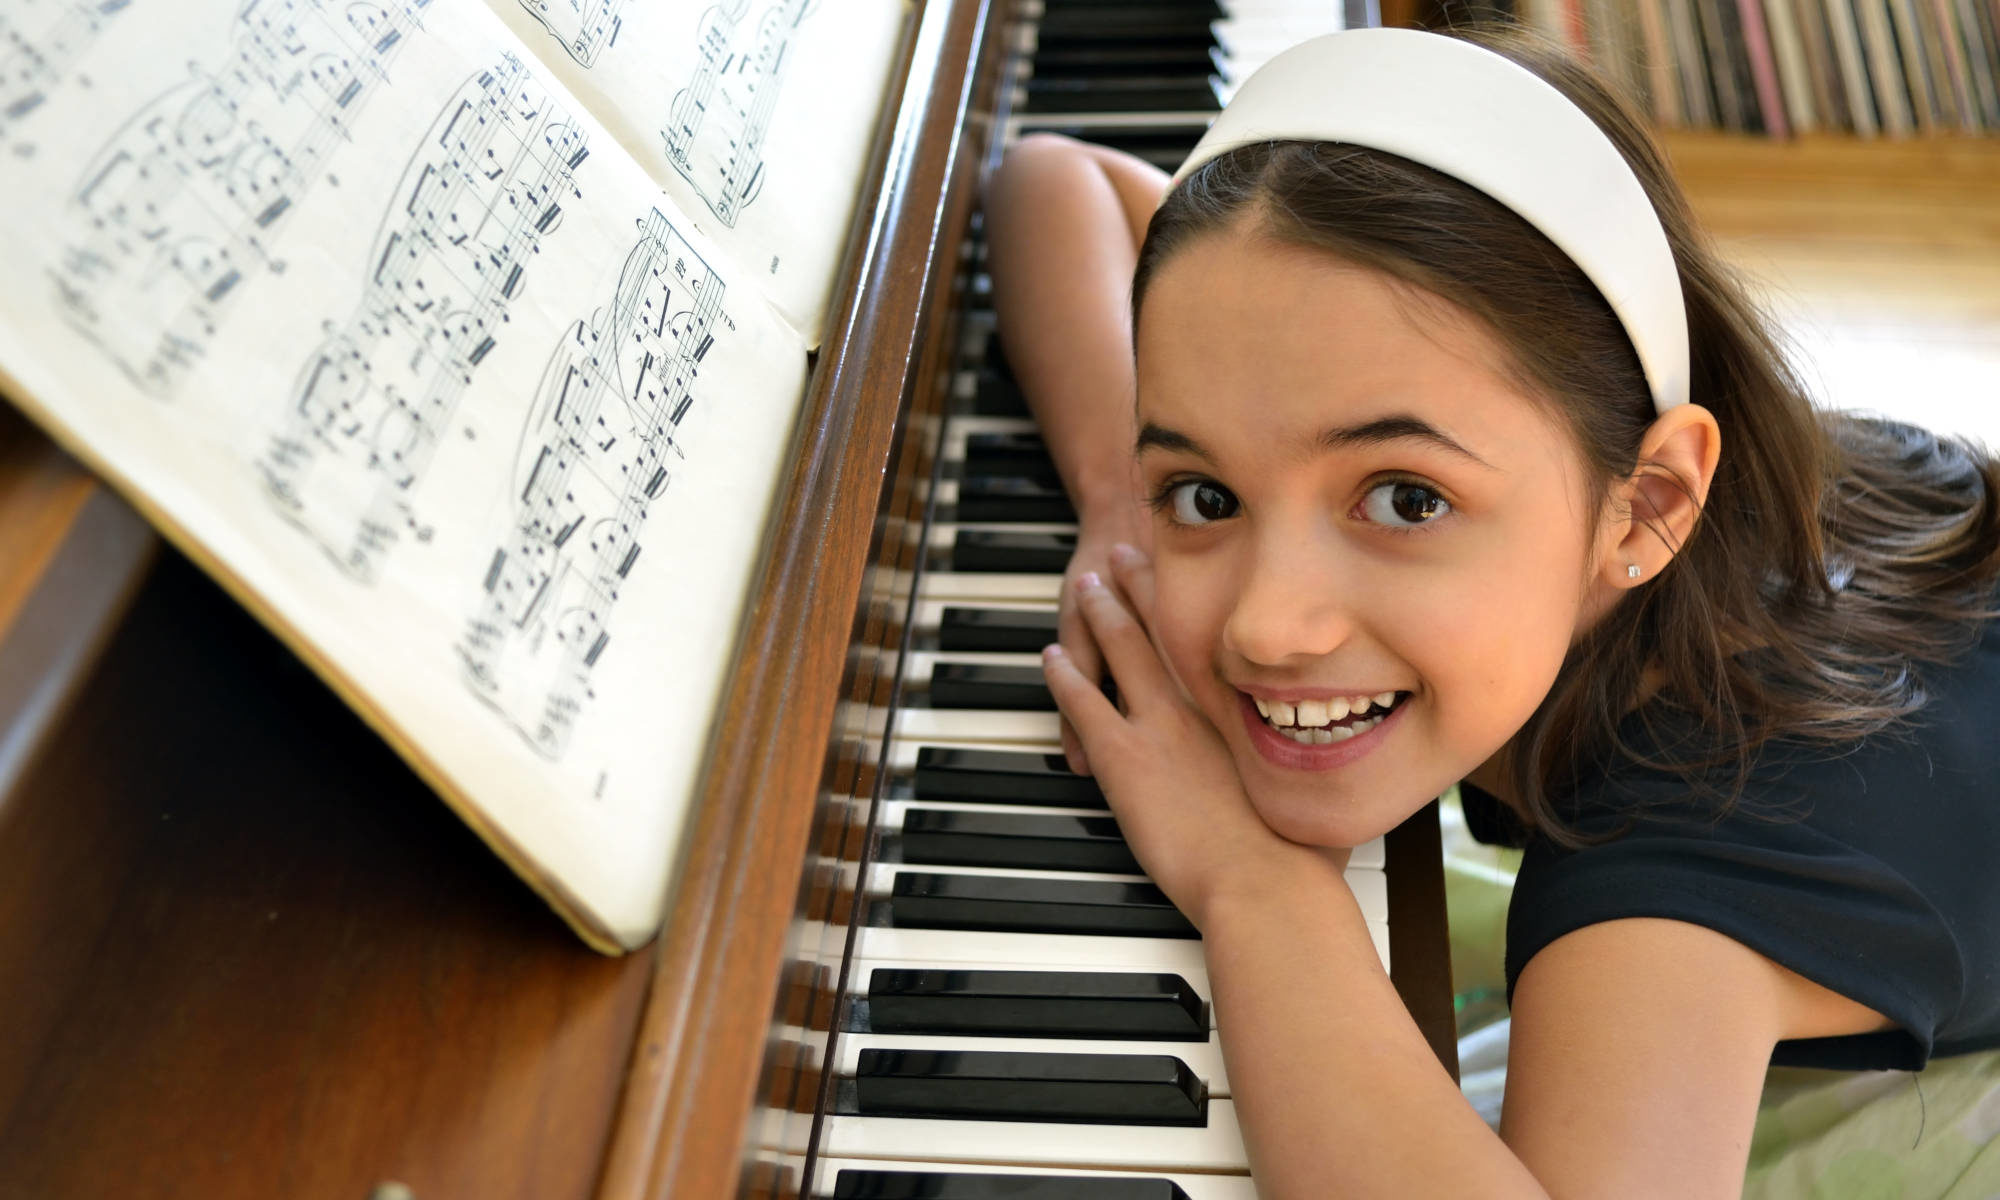 """Featured image for """"Piano Lessons"""" page depicting young girl with big smile sitting at piano and looking up at camera."""